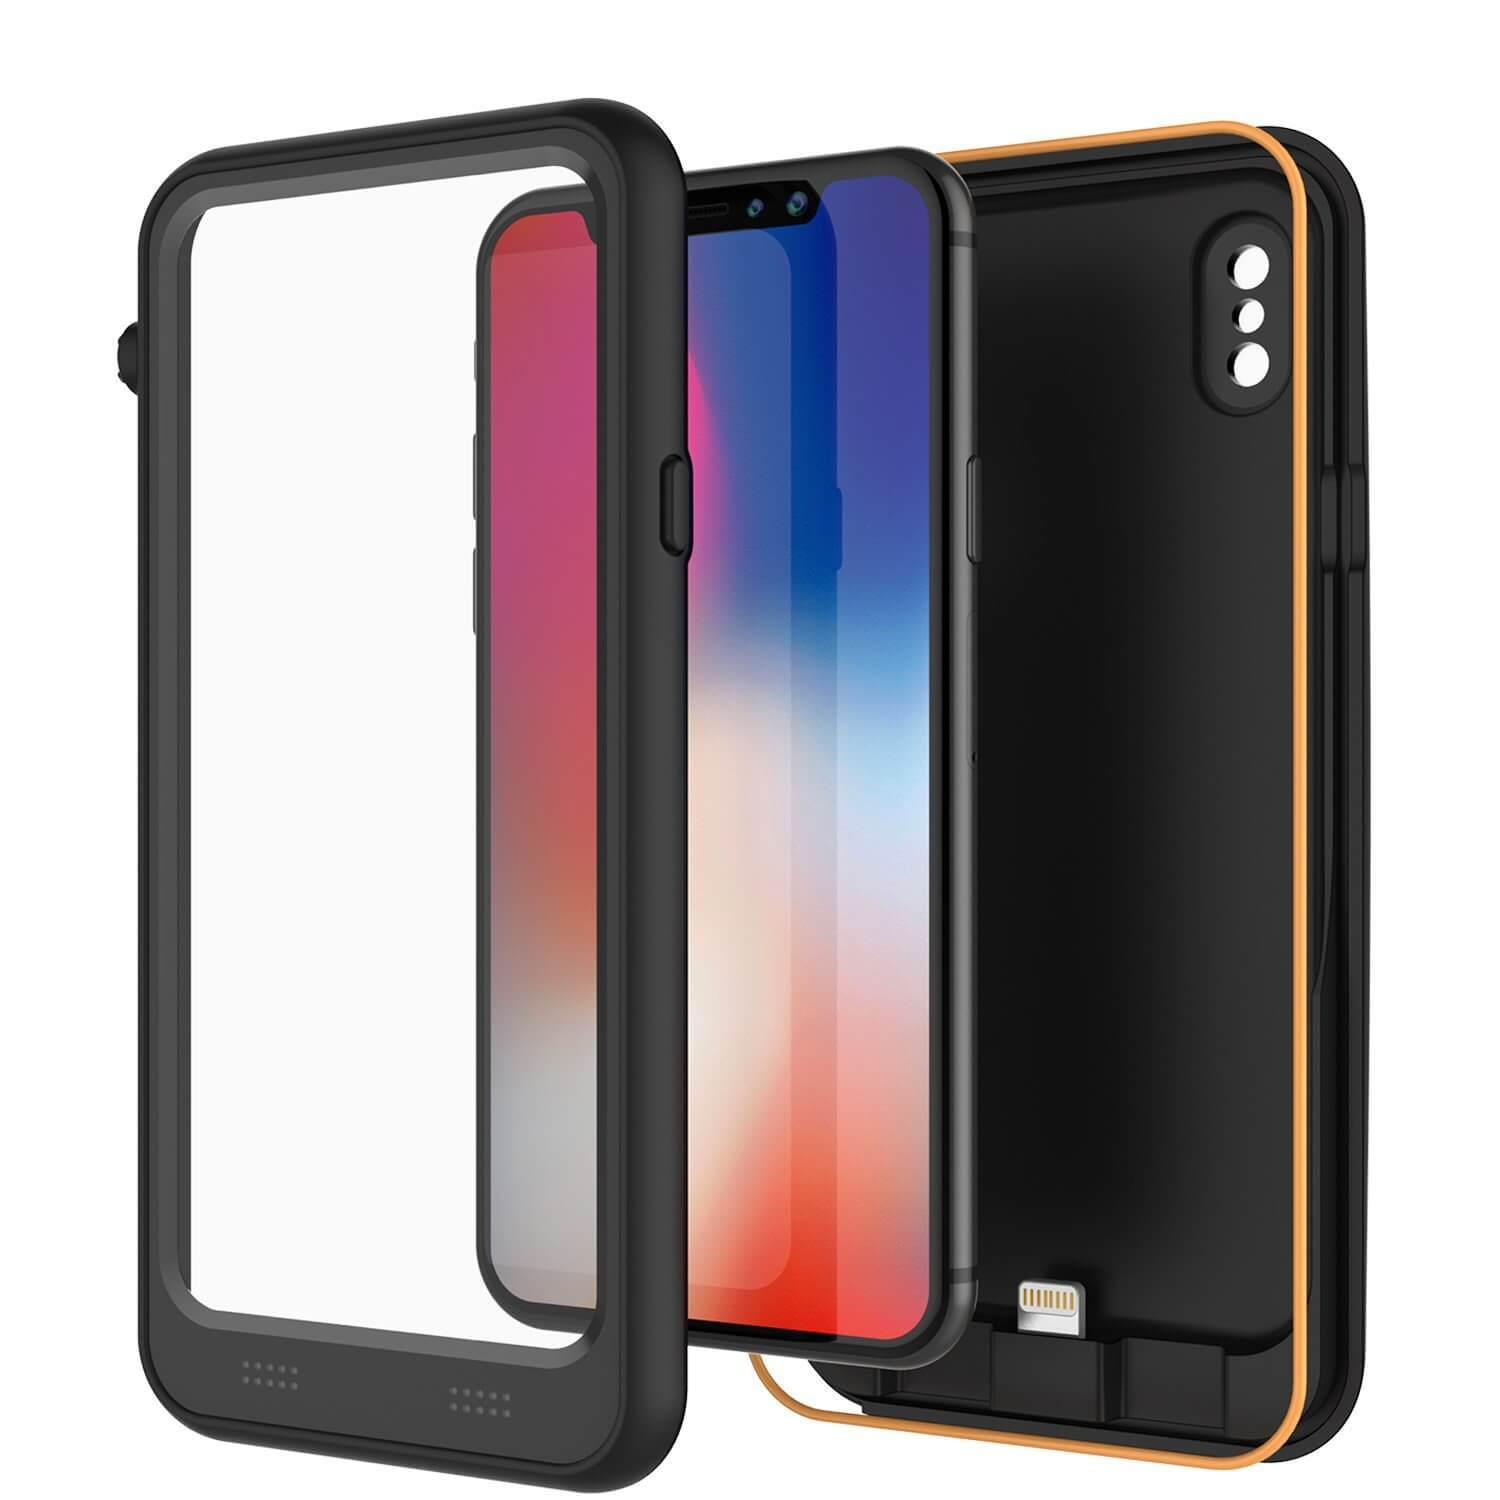 PunkJuice iPhone X Battery Case, Waterproof, IP68 Certified [Ultra Slim] [Black]